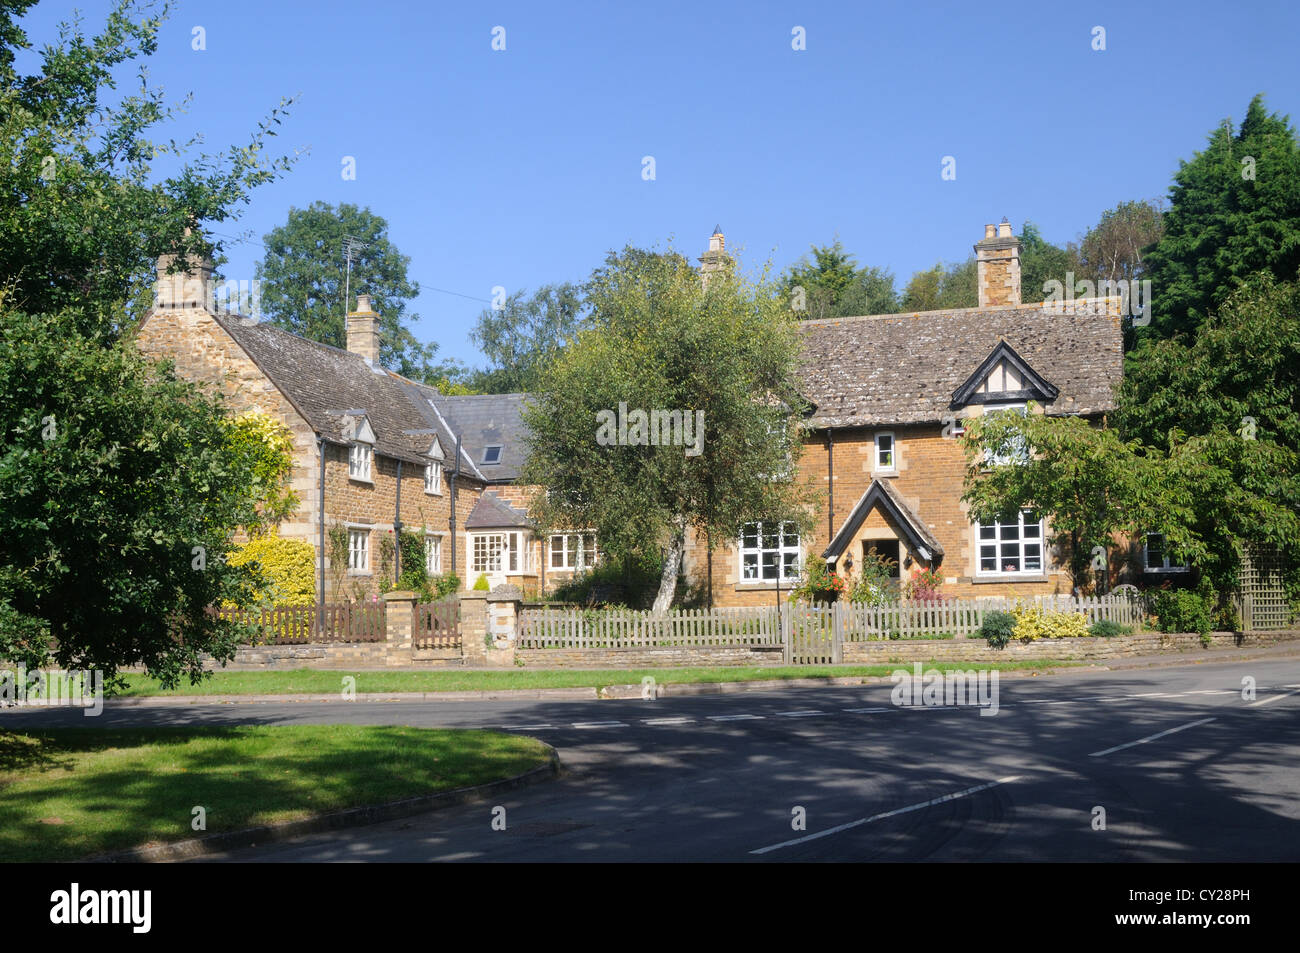 Cottages in the centre of Braunston-in-Rutland, Rutland, England - Stock Image